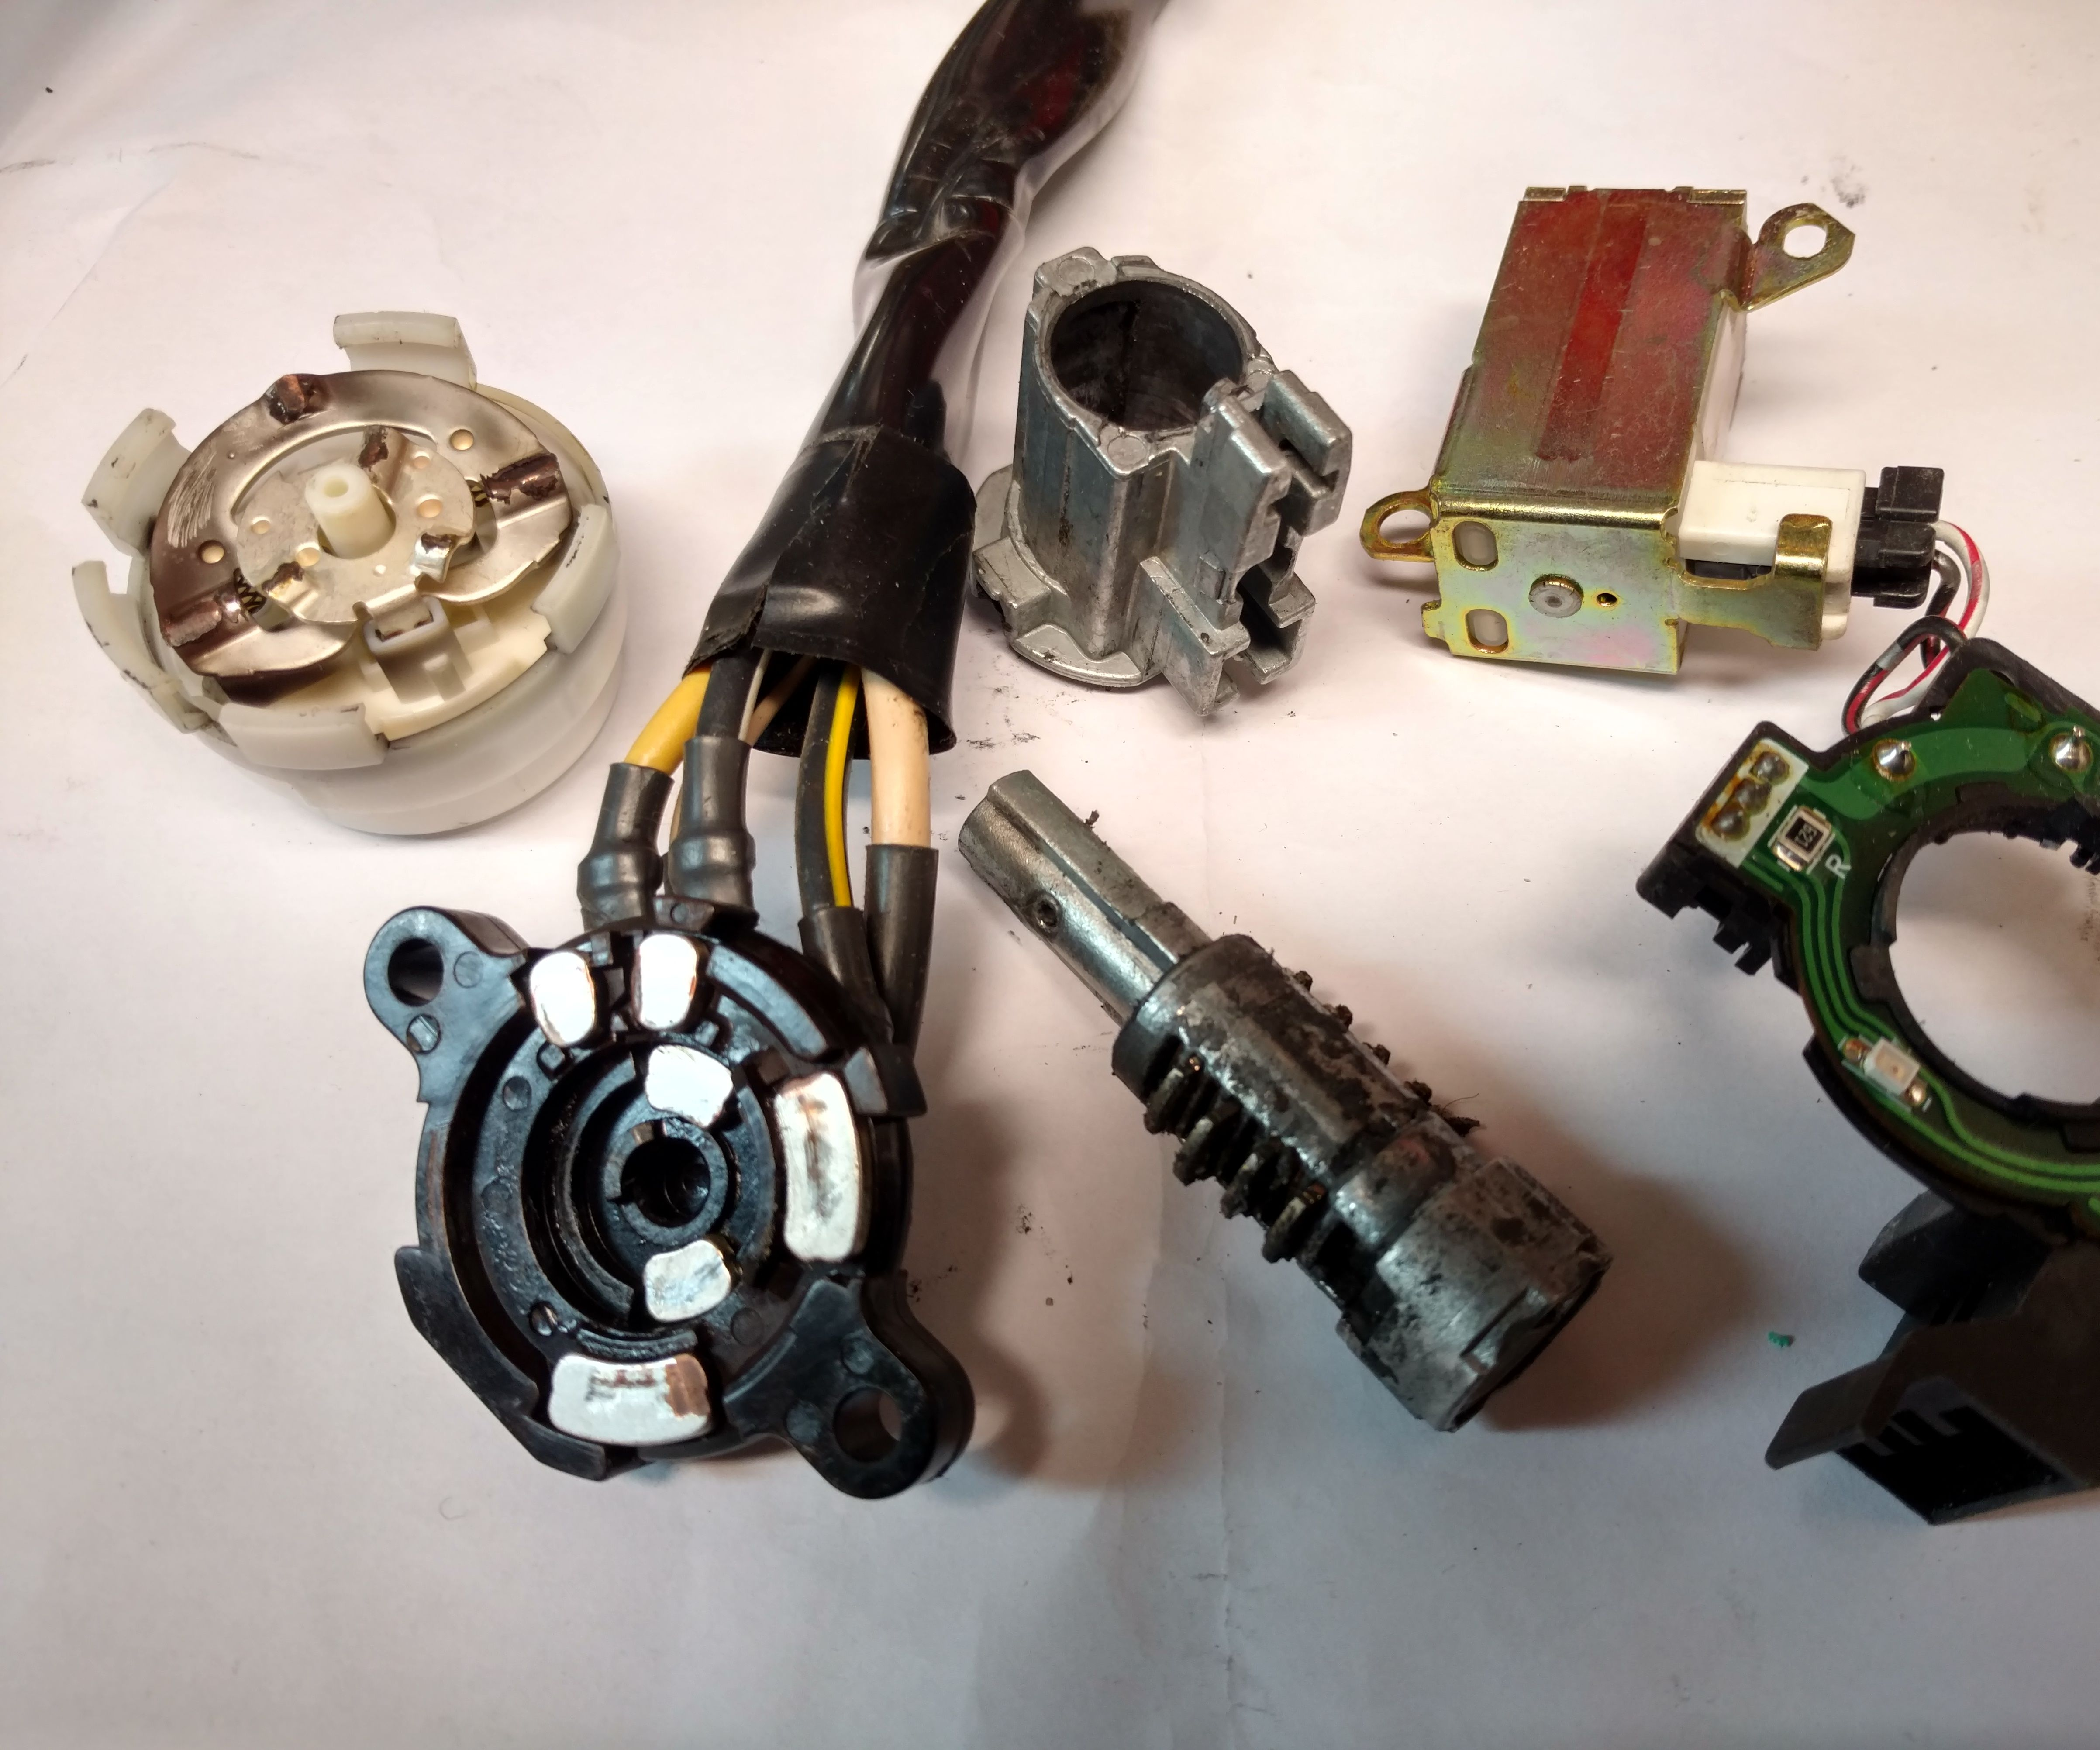 hight resolution of replace ignition assembly on a 2000 honda odyssey